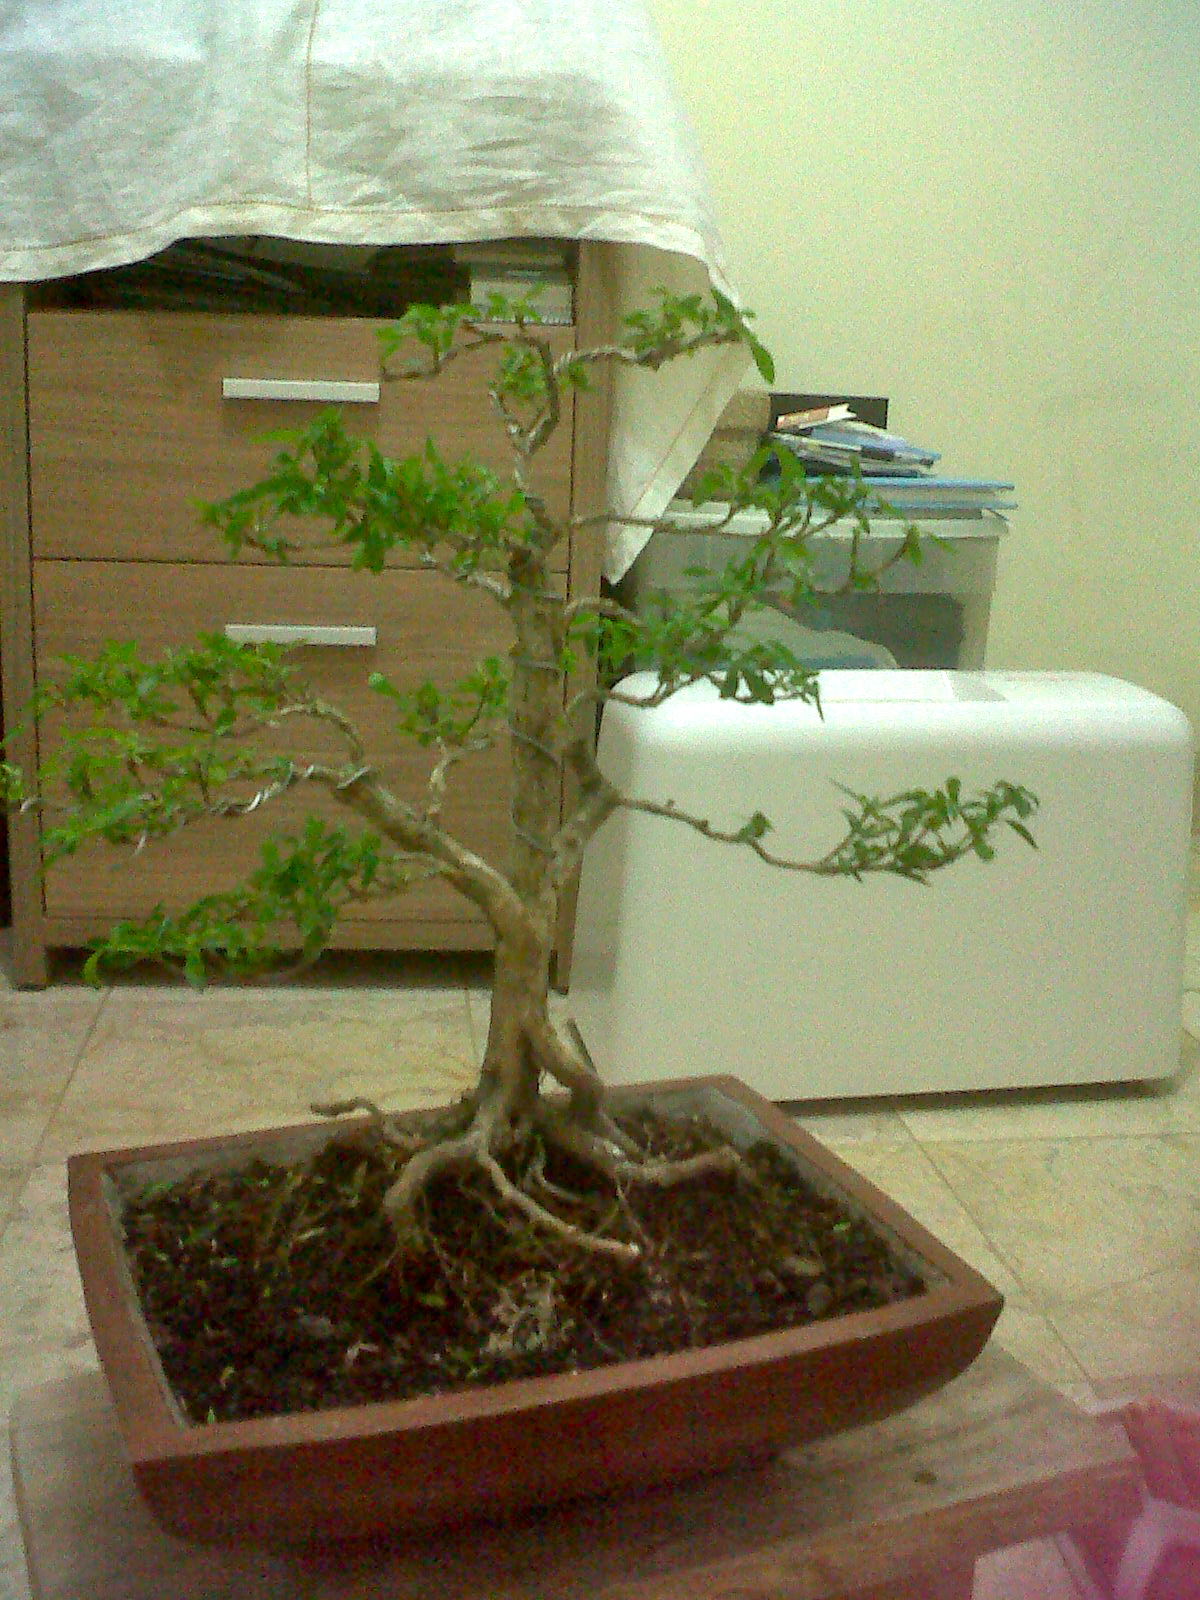 Do you think it's a Ginseng Ficus Bonsai?